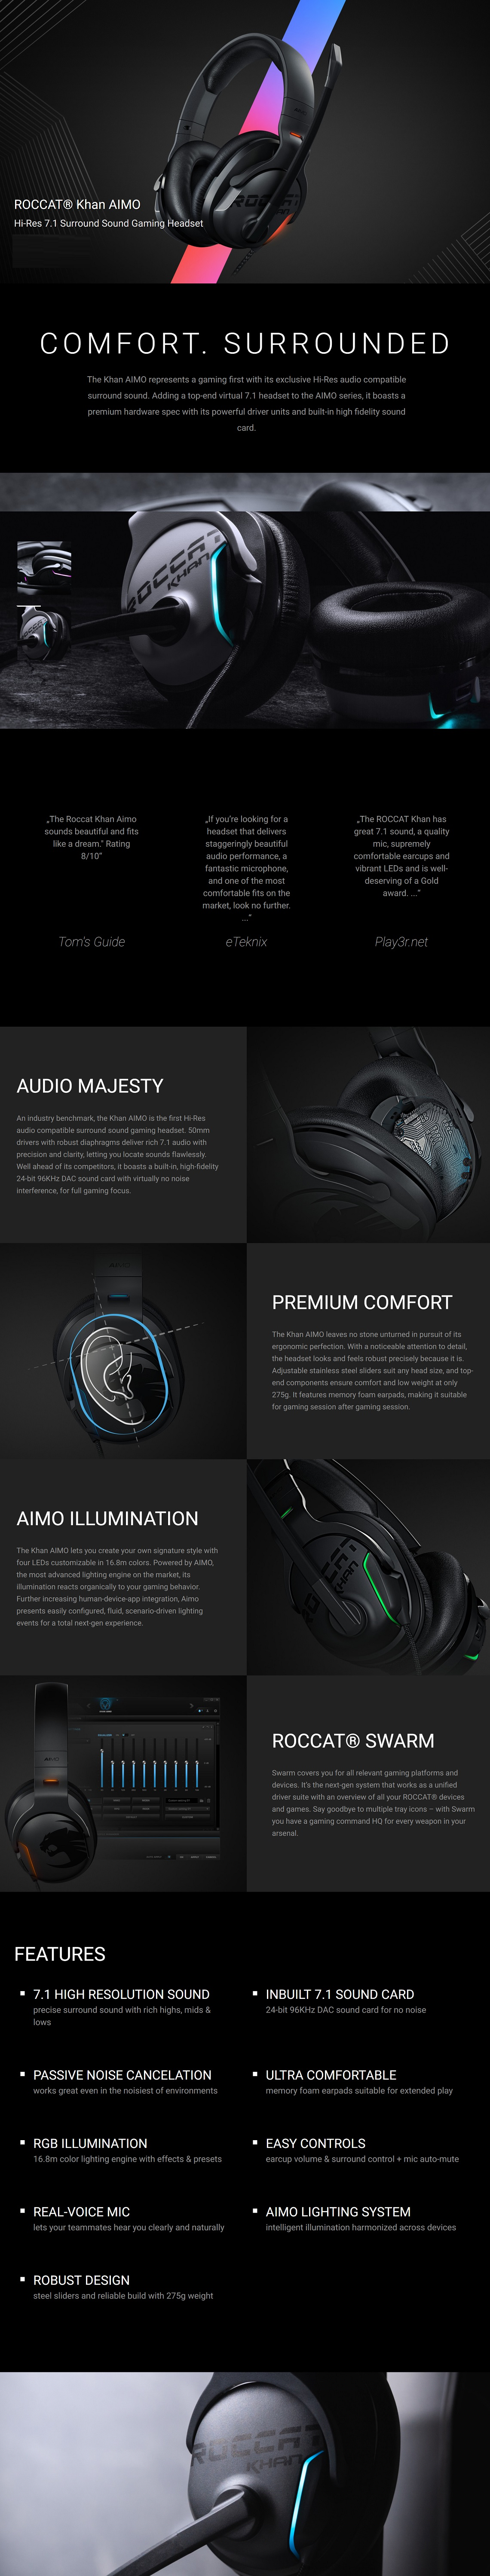 Roccat Khan AIMO 7.1 High Resolution RGB Gaming Headset White Noise Cancelation